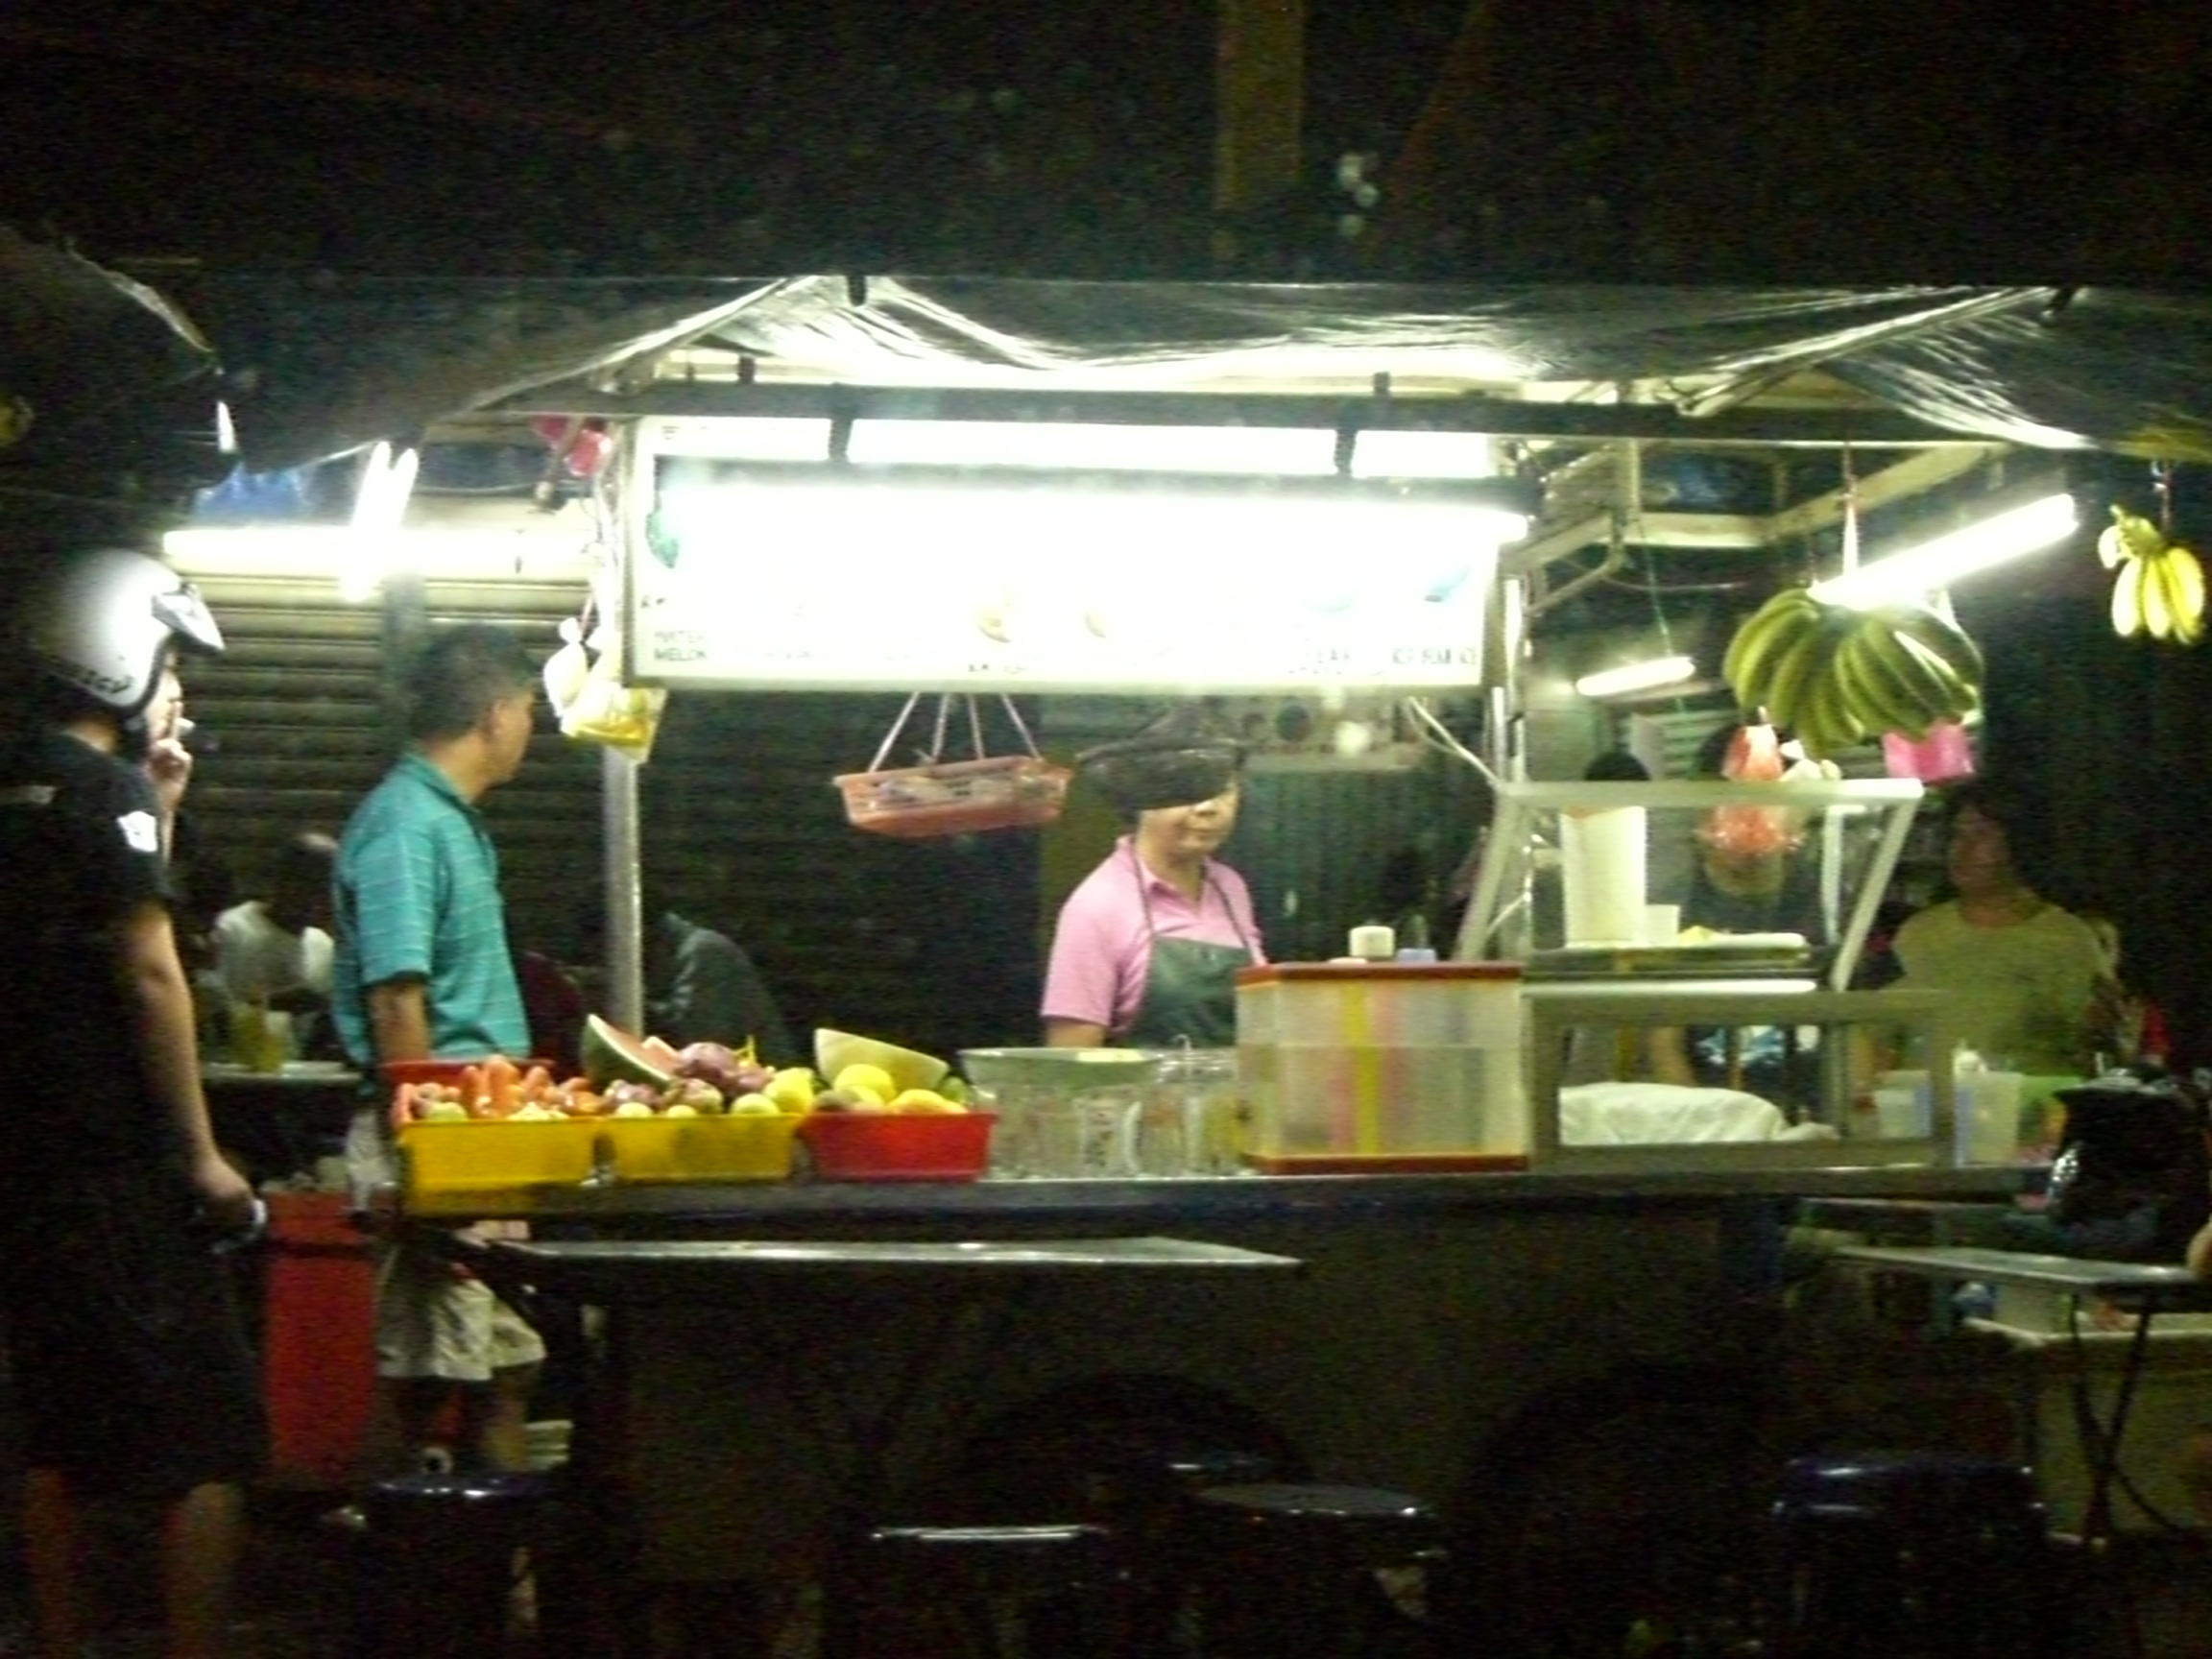 A quick photo of the fruit stall that is blur